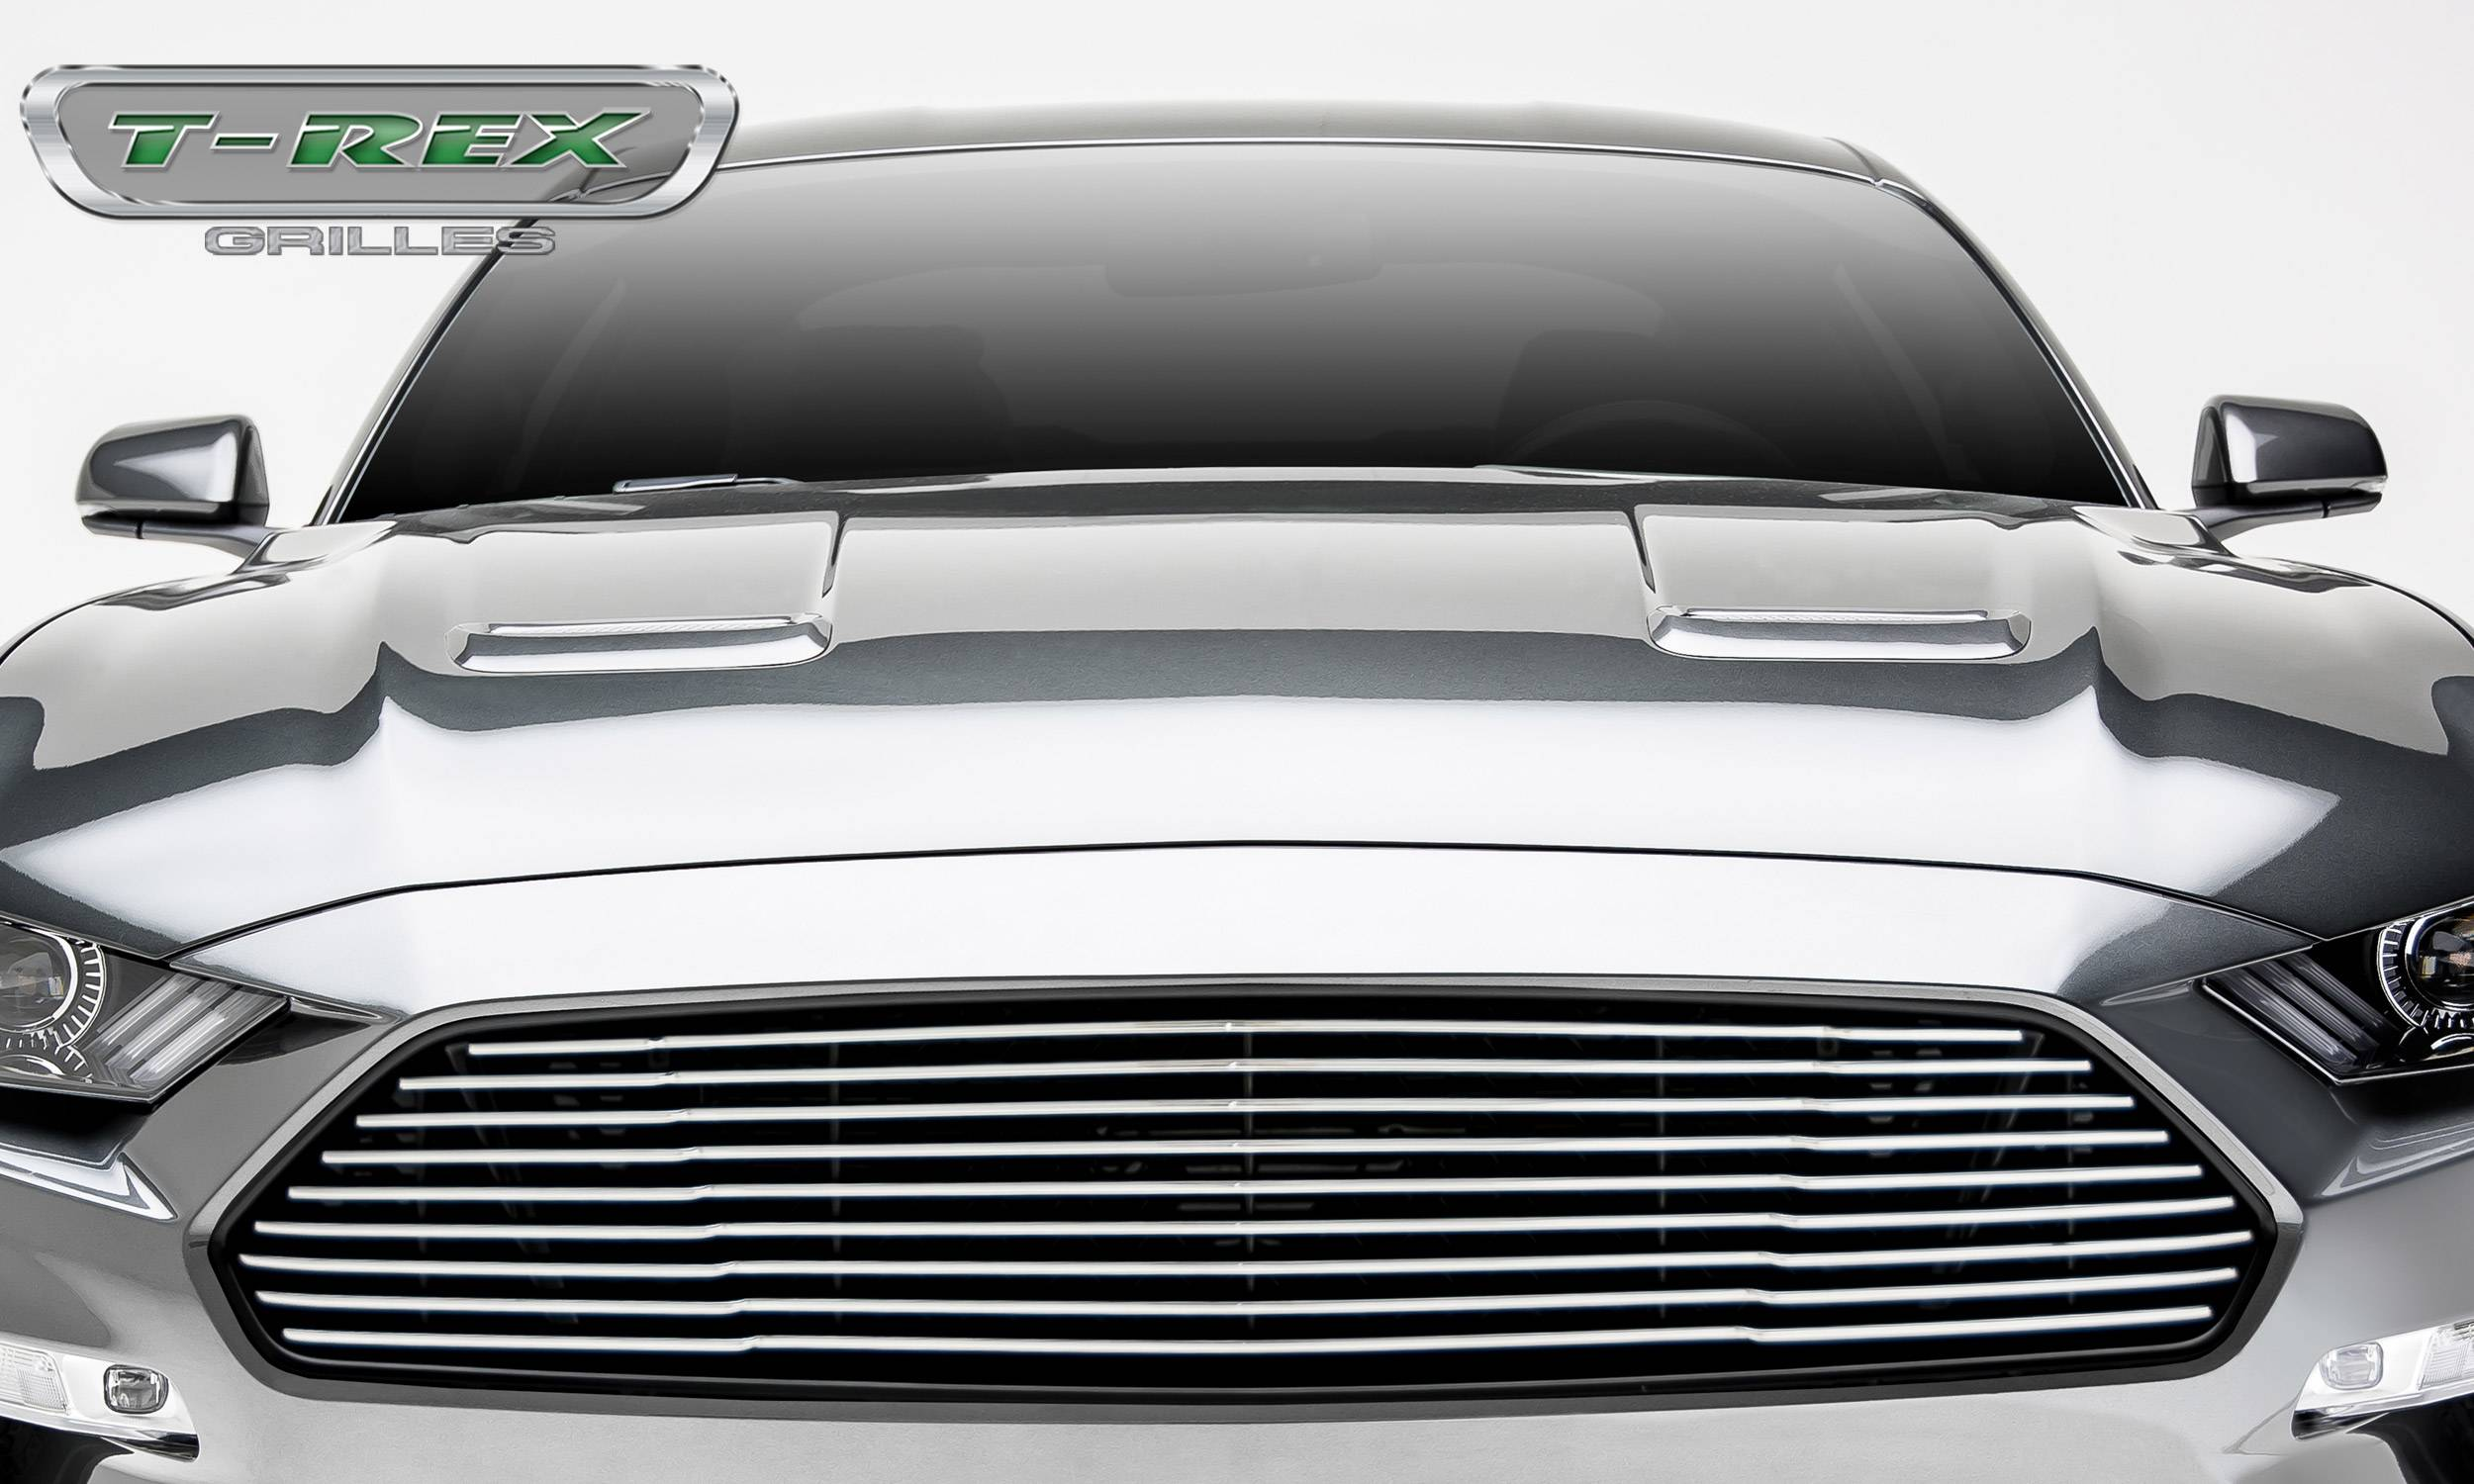 Ford Mustang GT - Billet Grille - Main, Overlay with Black Powder Coated Finish and Polished Face - Pt # 6215500